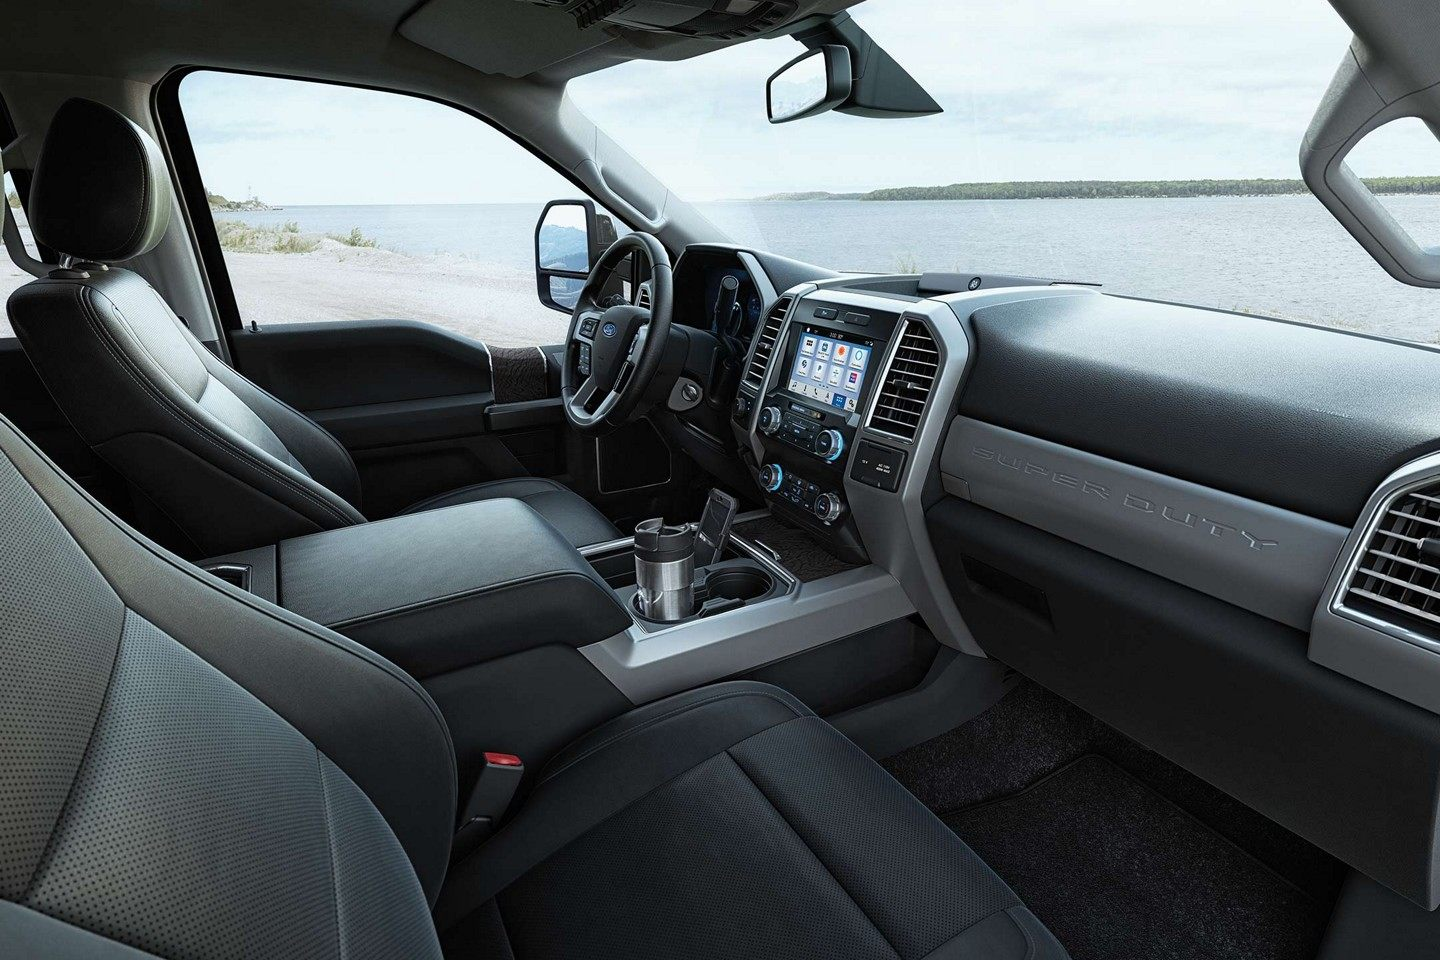 Interior of the 2019 Ford F-350 Super Duty